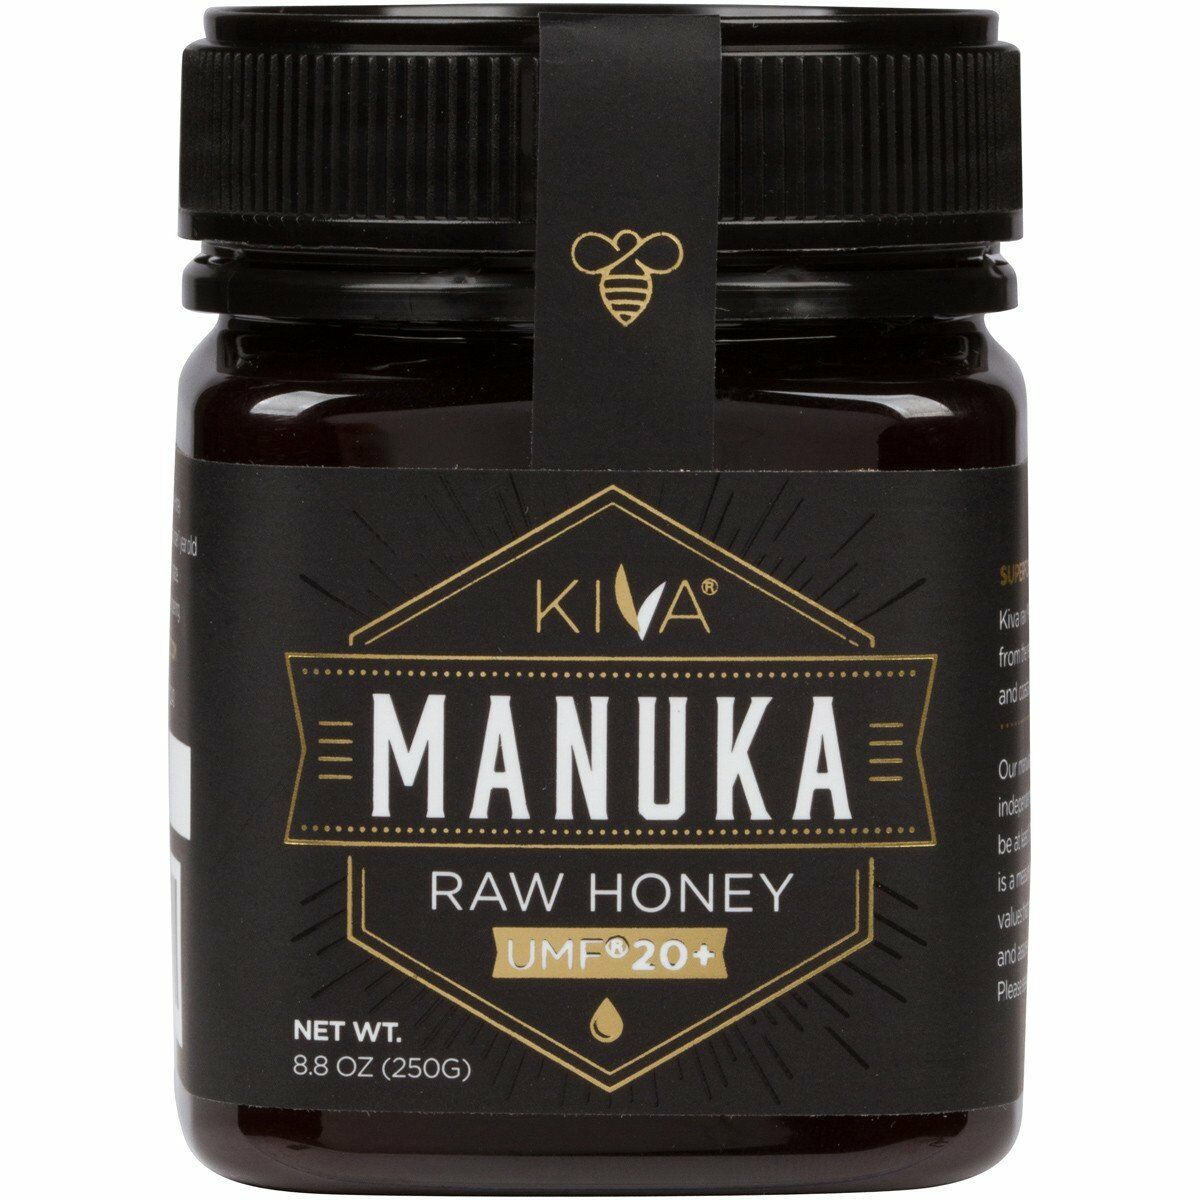 *NEW!*- KIVA Certified UMF 20+ Raw Manuka Honey (8.8oz)